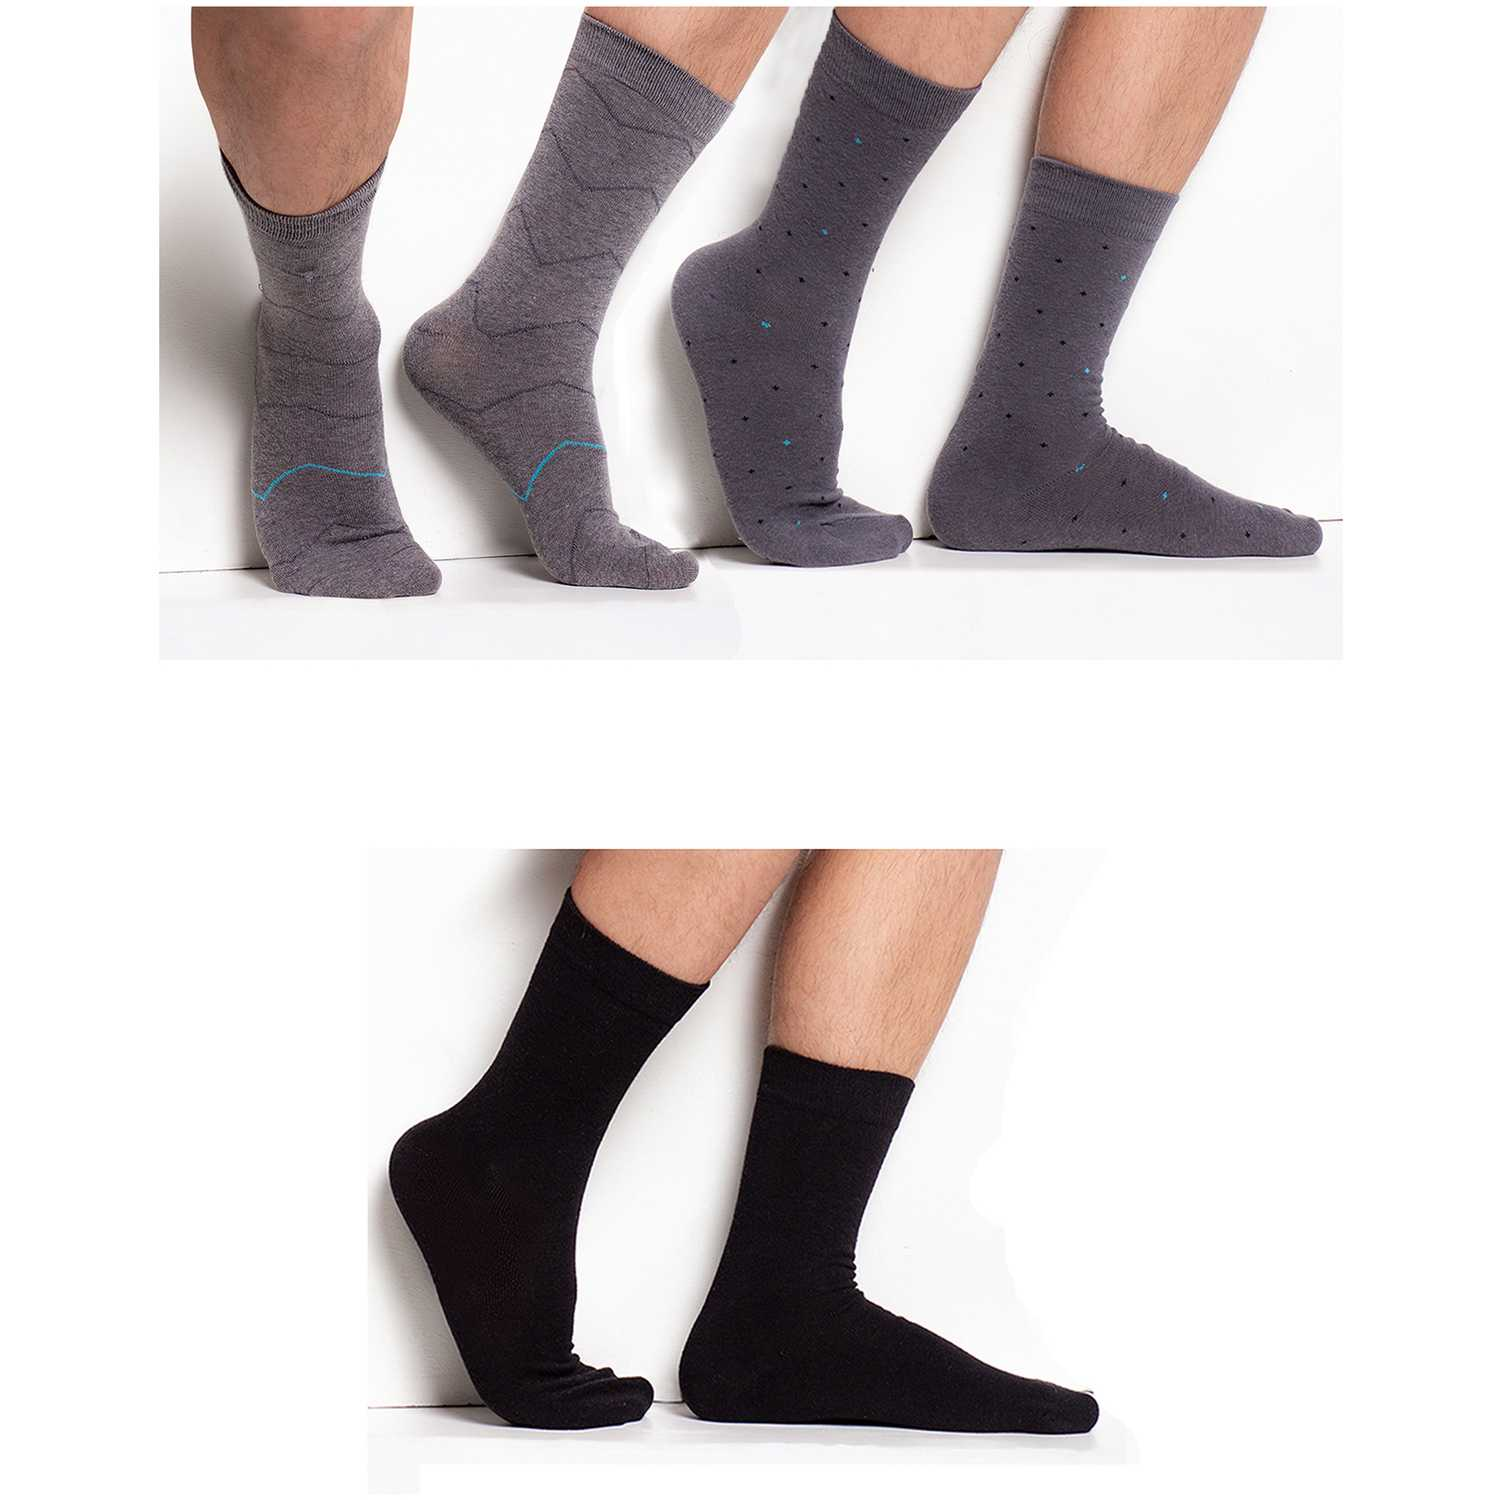 Universal  Fit Stretch Cotton Socks (3 pairs)